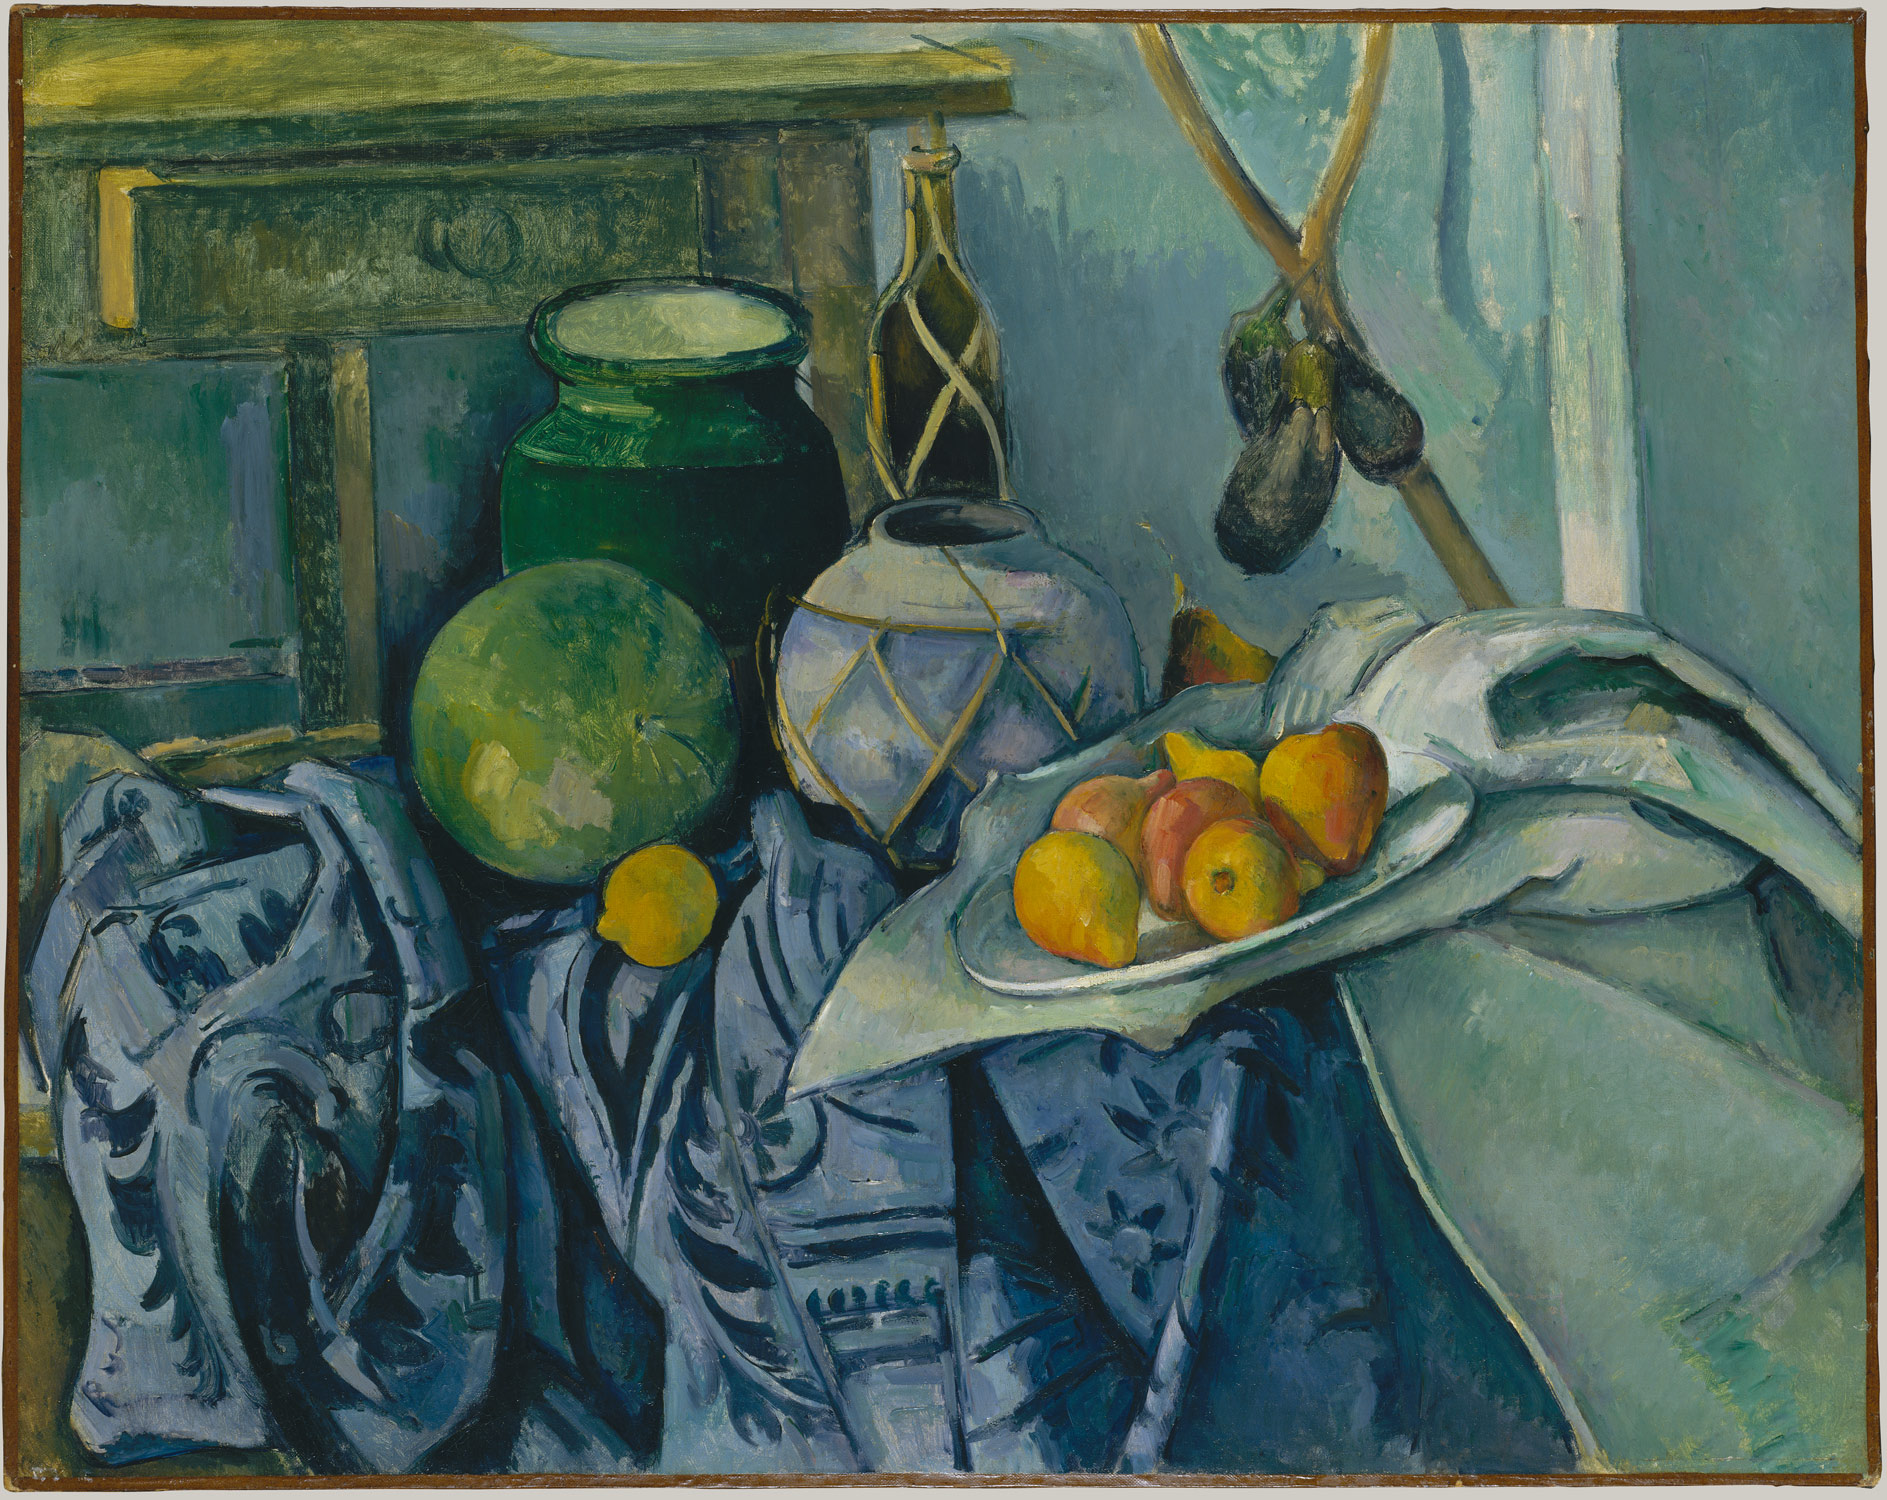 Paul cezanne,Still Life with a Ginger Jar and Eggplants,1893–94,Oil on canvas, 28 1/2 x 36 in.